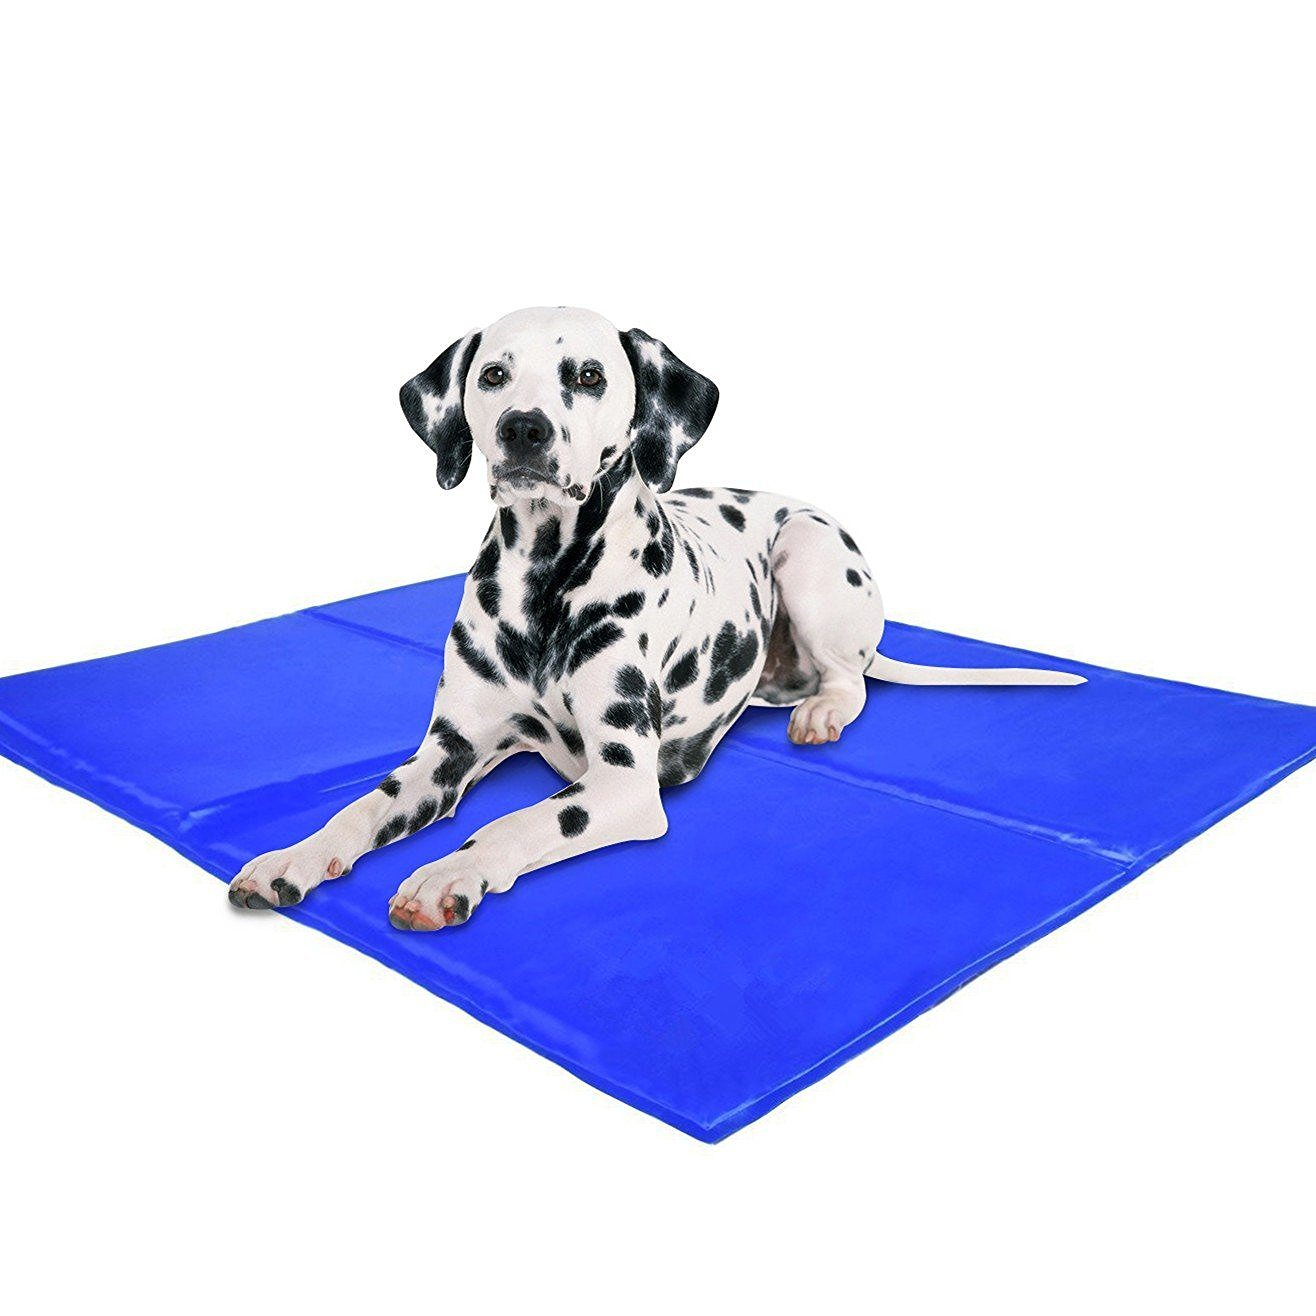 Pet Cooling Mat - Soft Gel Comfort for Dogs. Durable, Safe, Non-Toxic & Easy to Clean. Large Size (140*90cm)